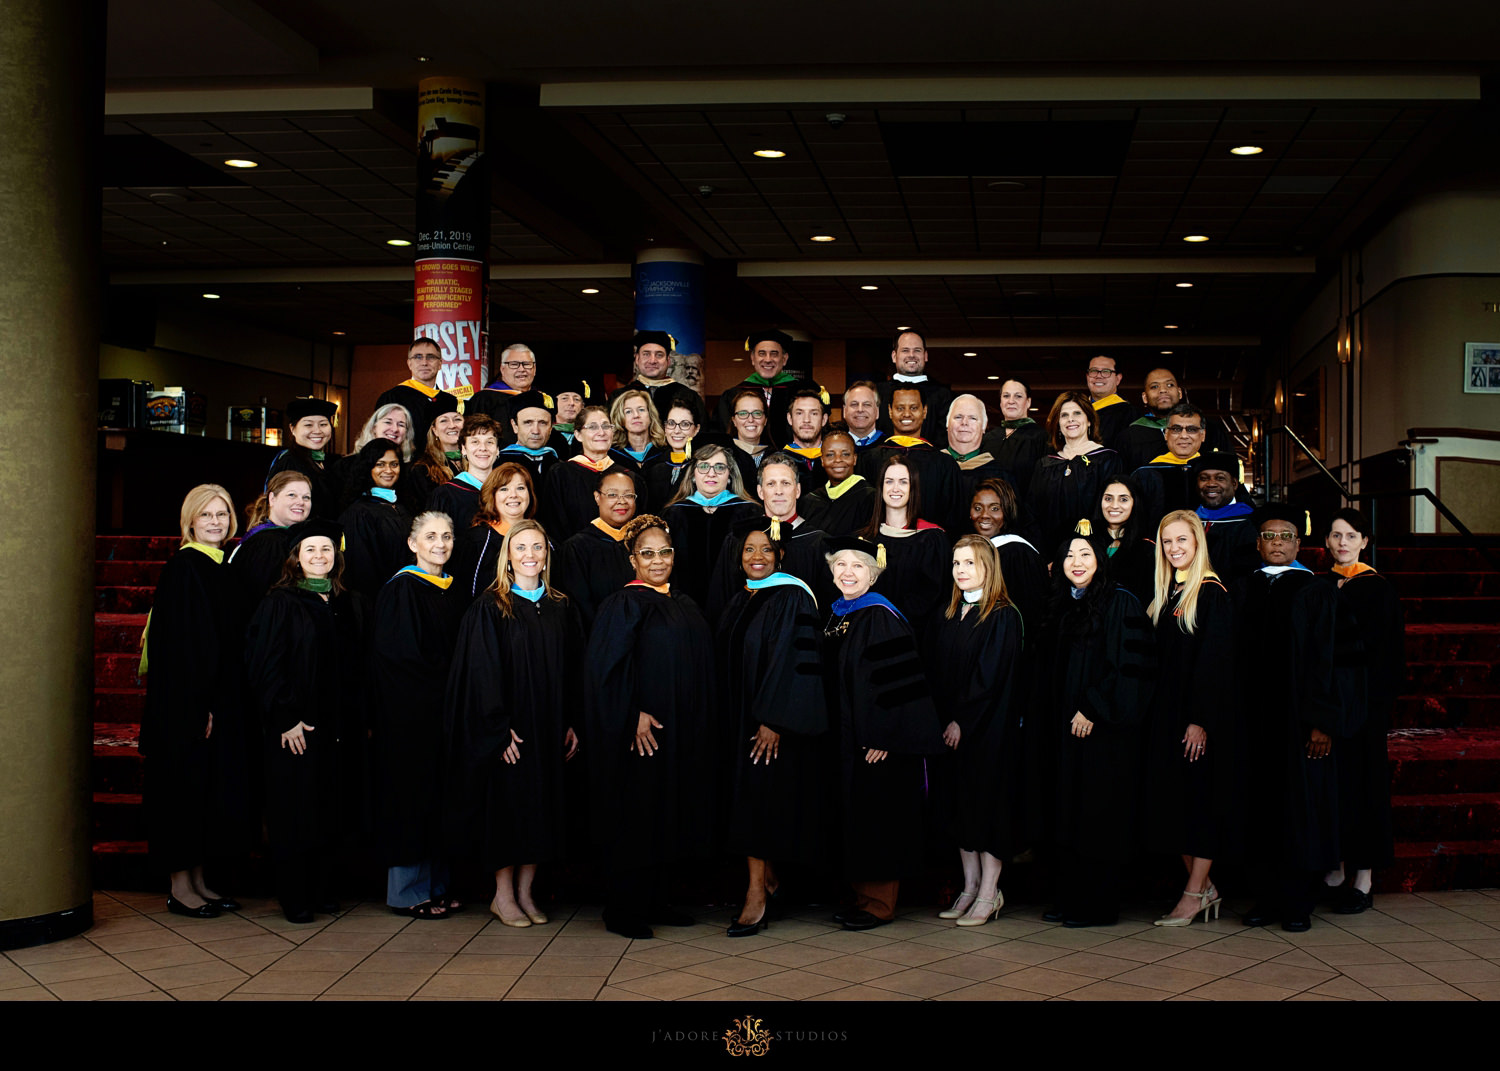 Faculty group photo - corporate photography